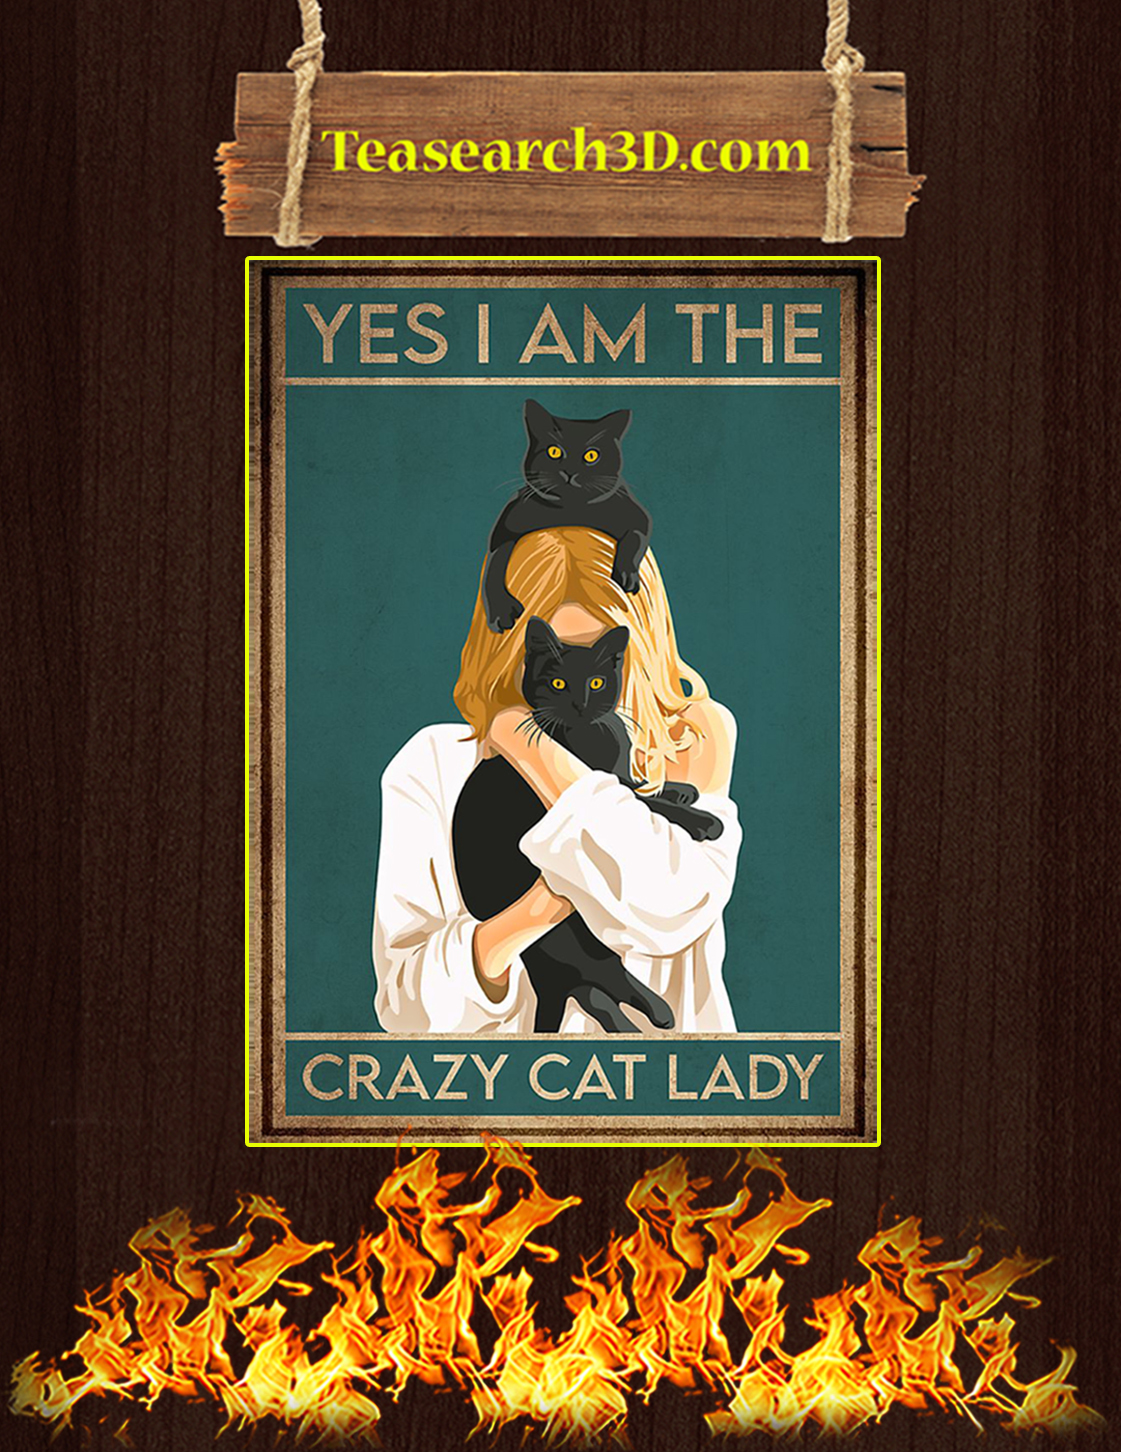 Yes I am the crazy cat lady poster A3